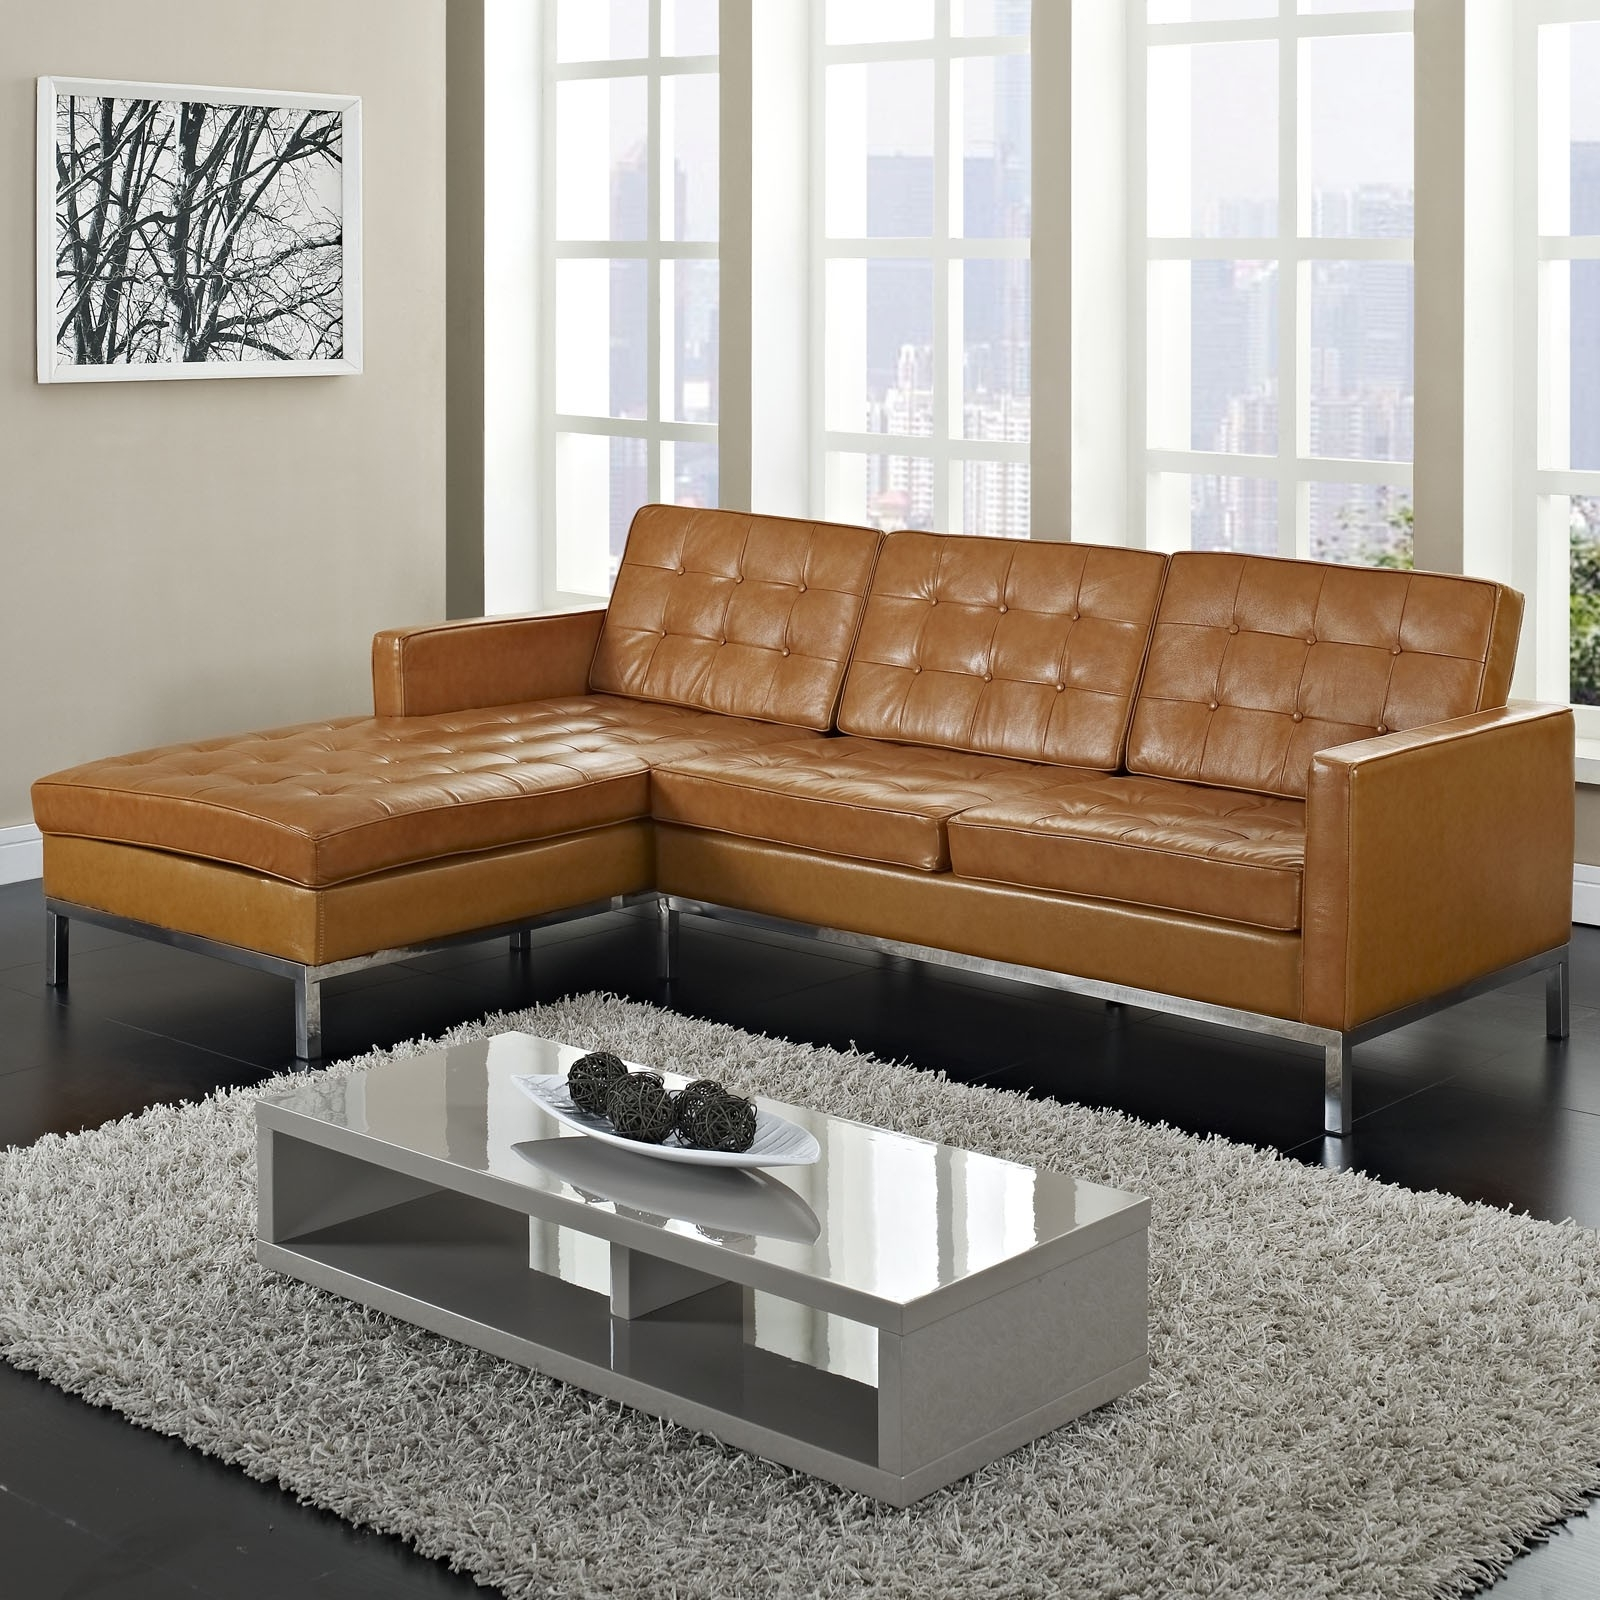 2018 Furniture, Maximizing Small Living Room Spaces With 3 Piece Brown Regarding Sectional Sofas For Small Places (View 2 of 20)